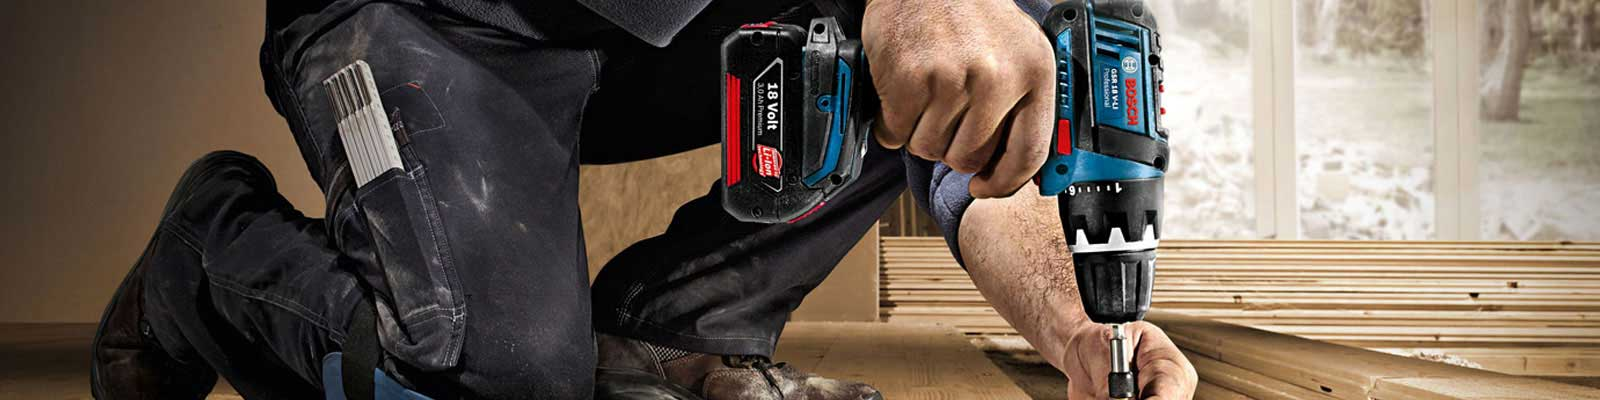 The Hire Center Power Tools